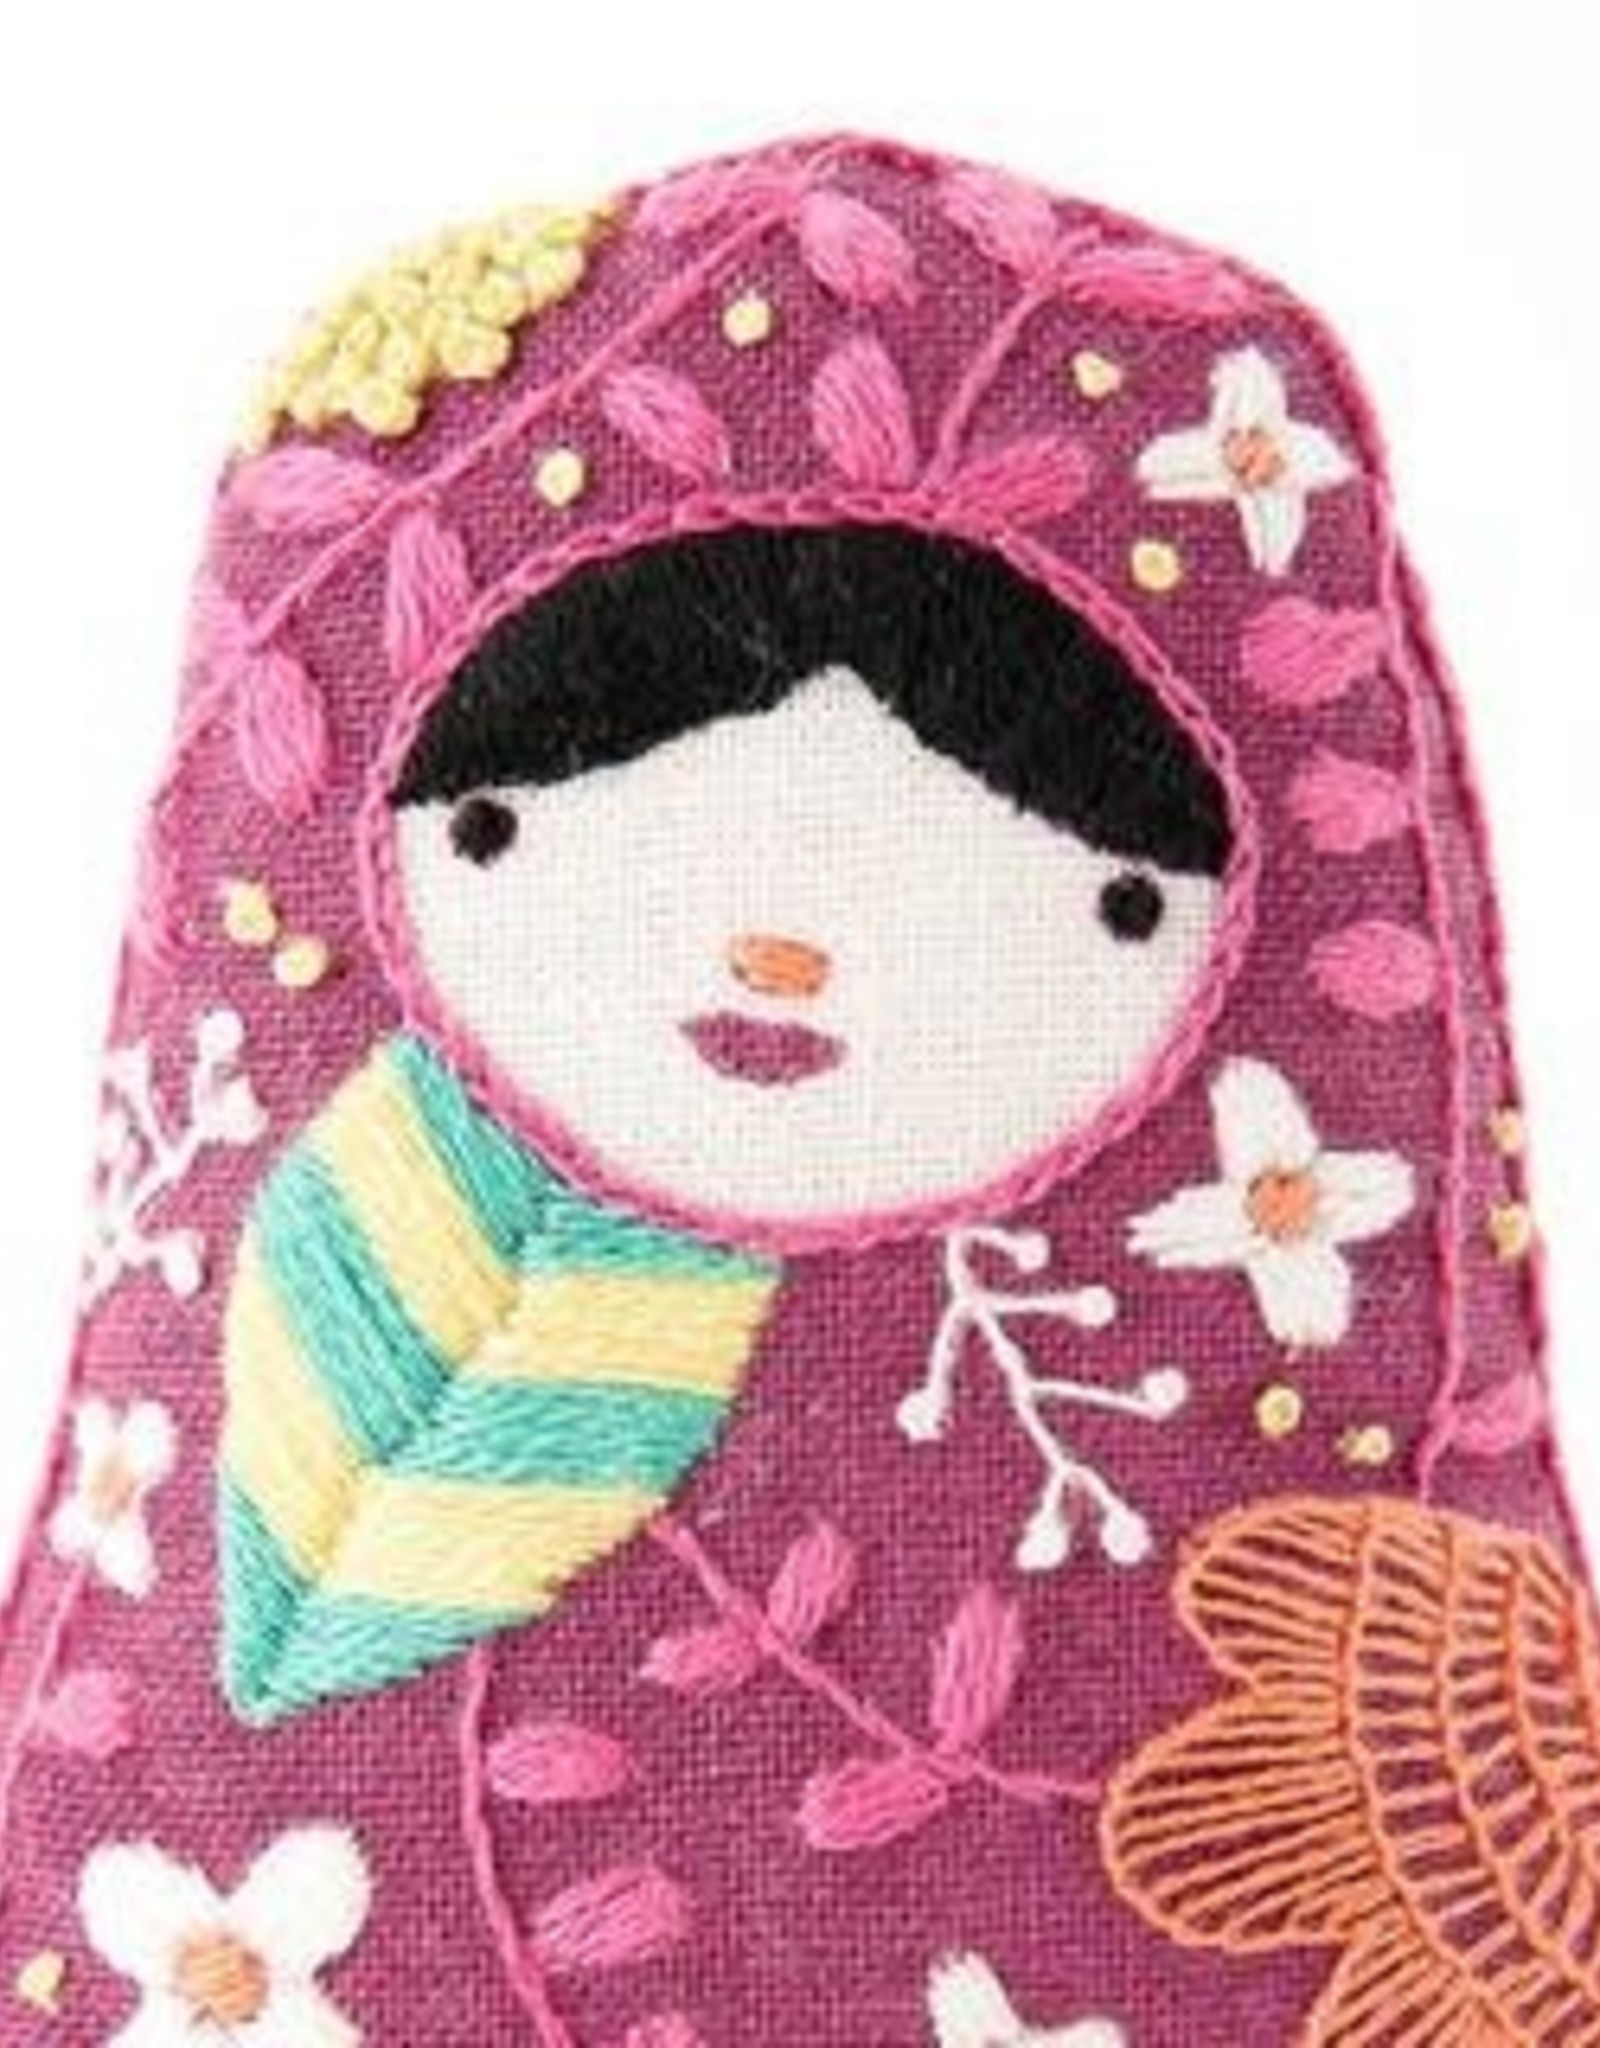 Kiriki Embroidery Kit Level 3 matroyshka doll